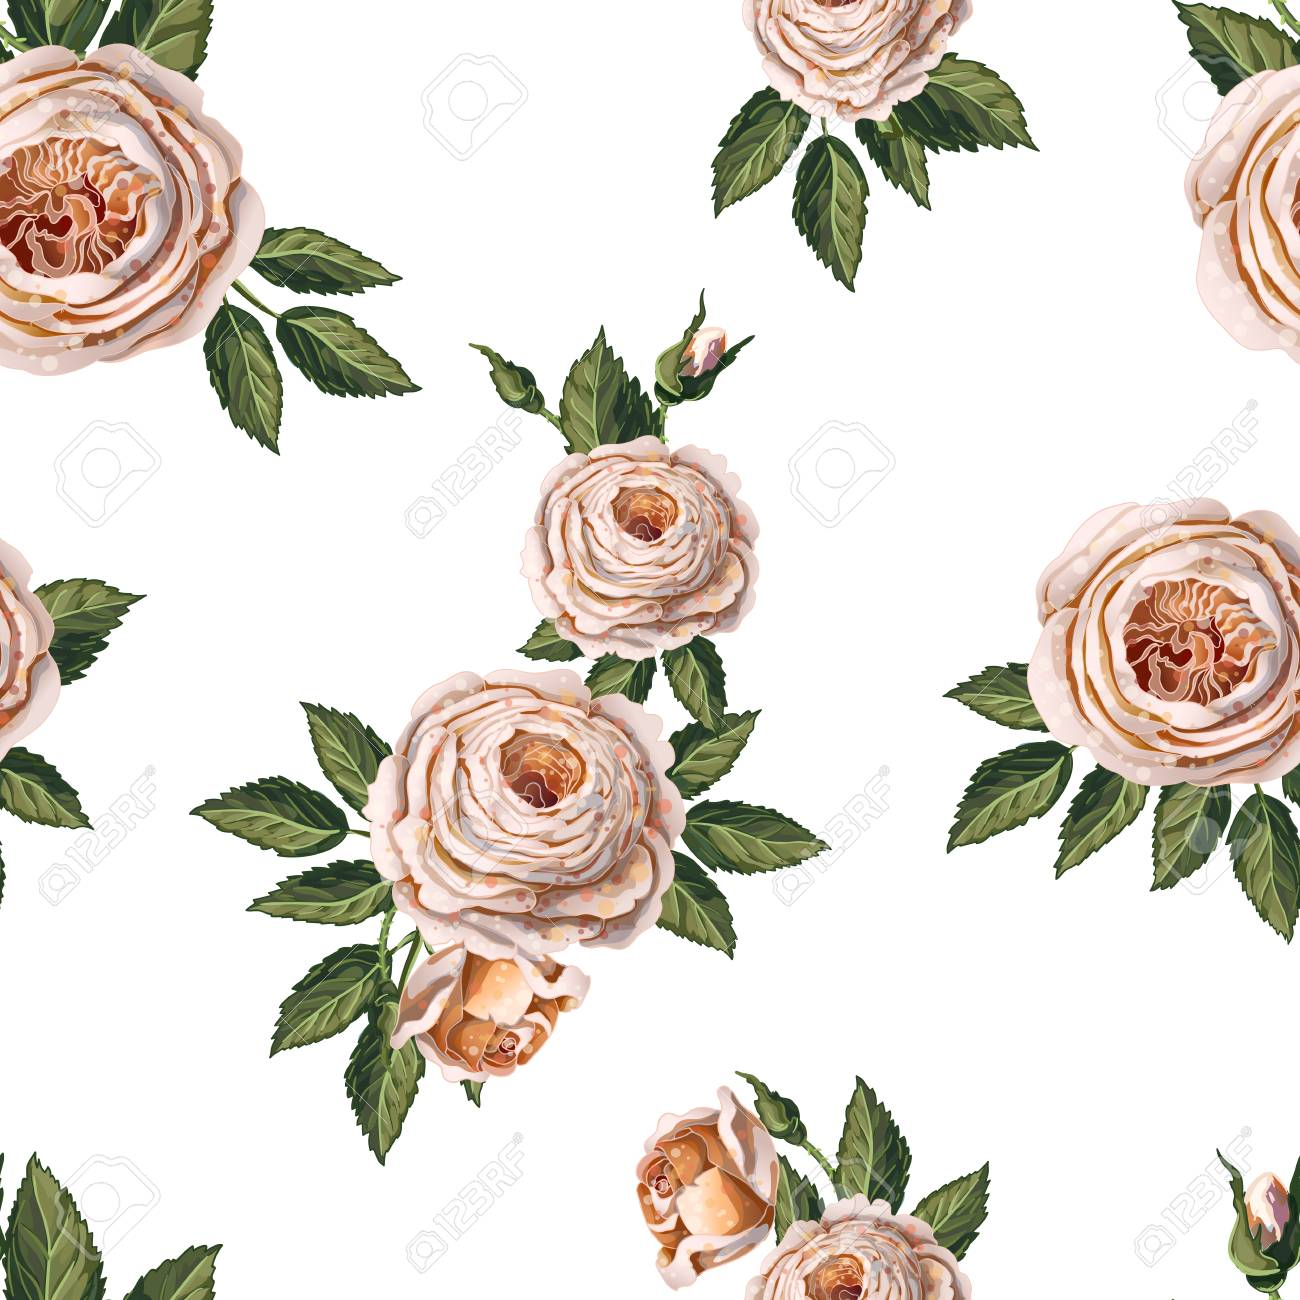 Seamless pattern with English roses on a blue background. - 110212960